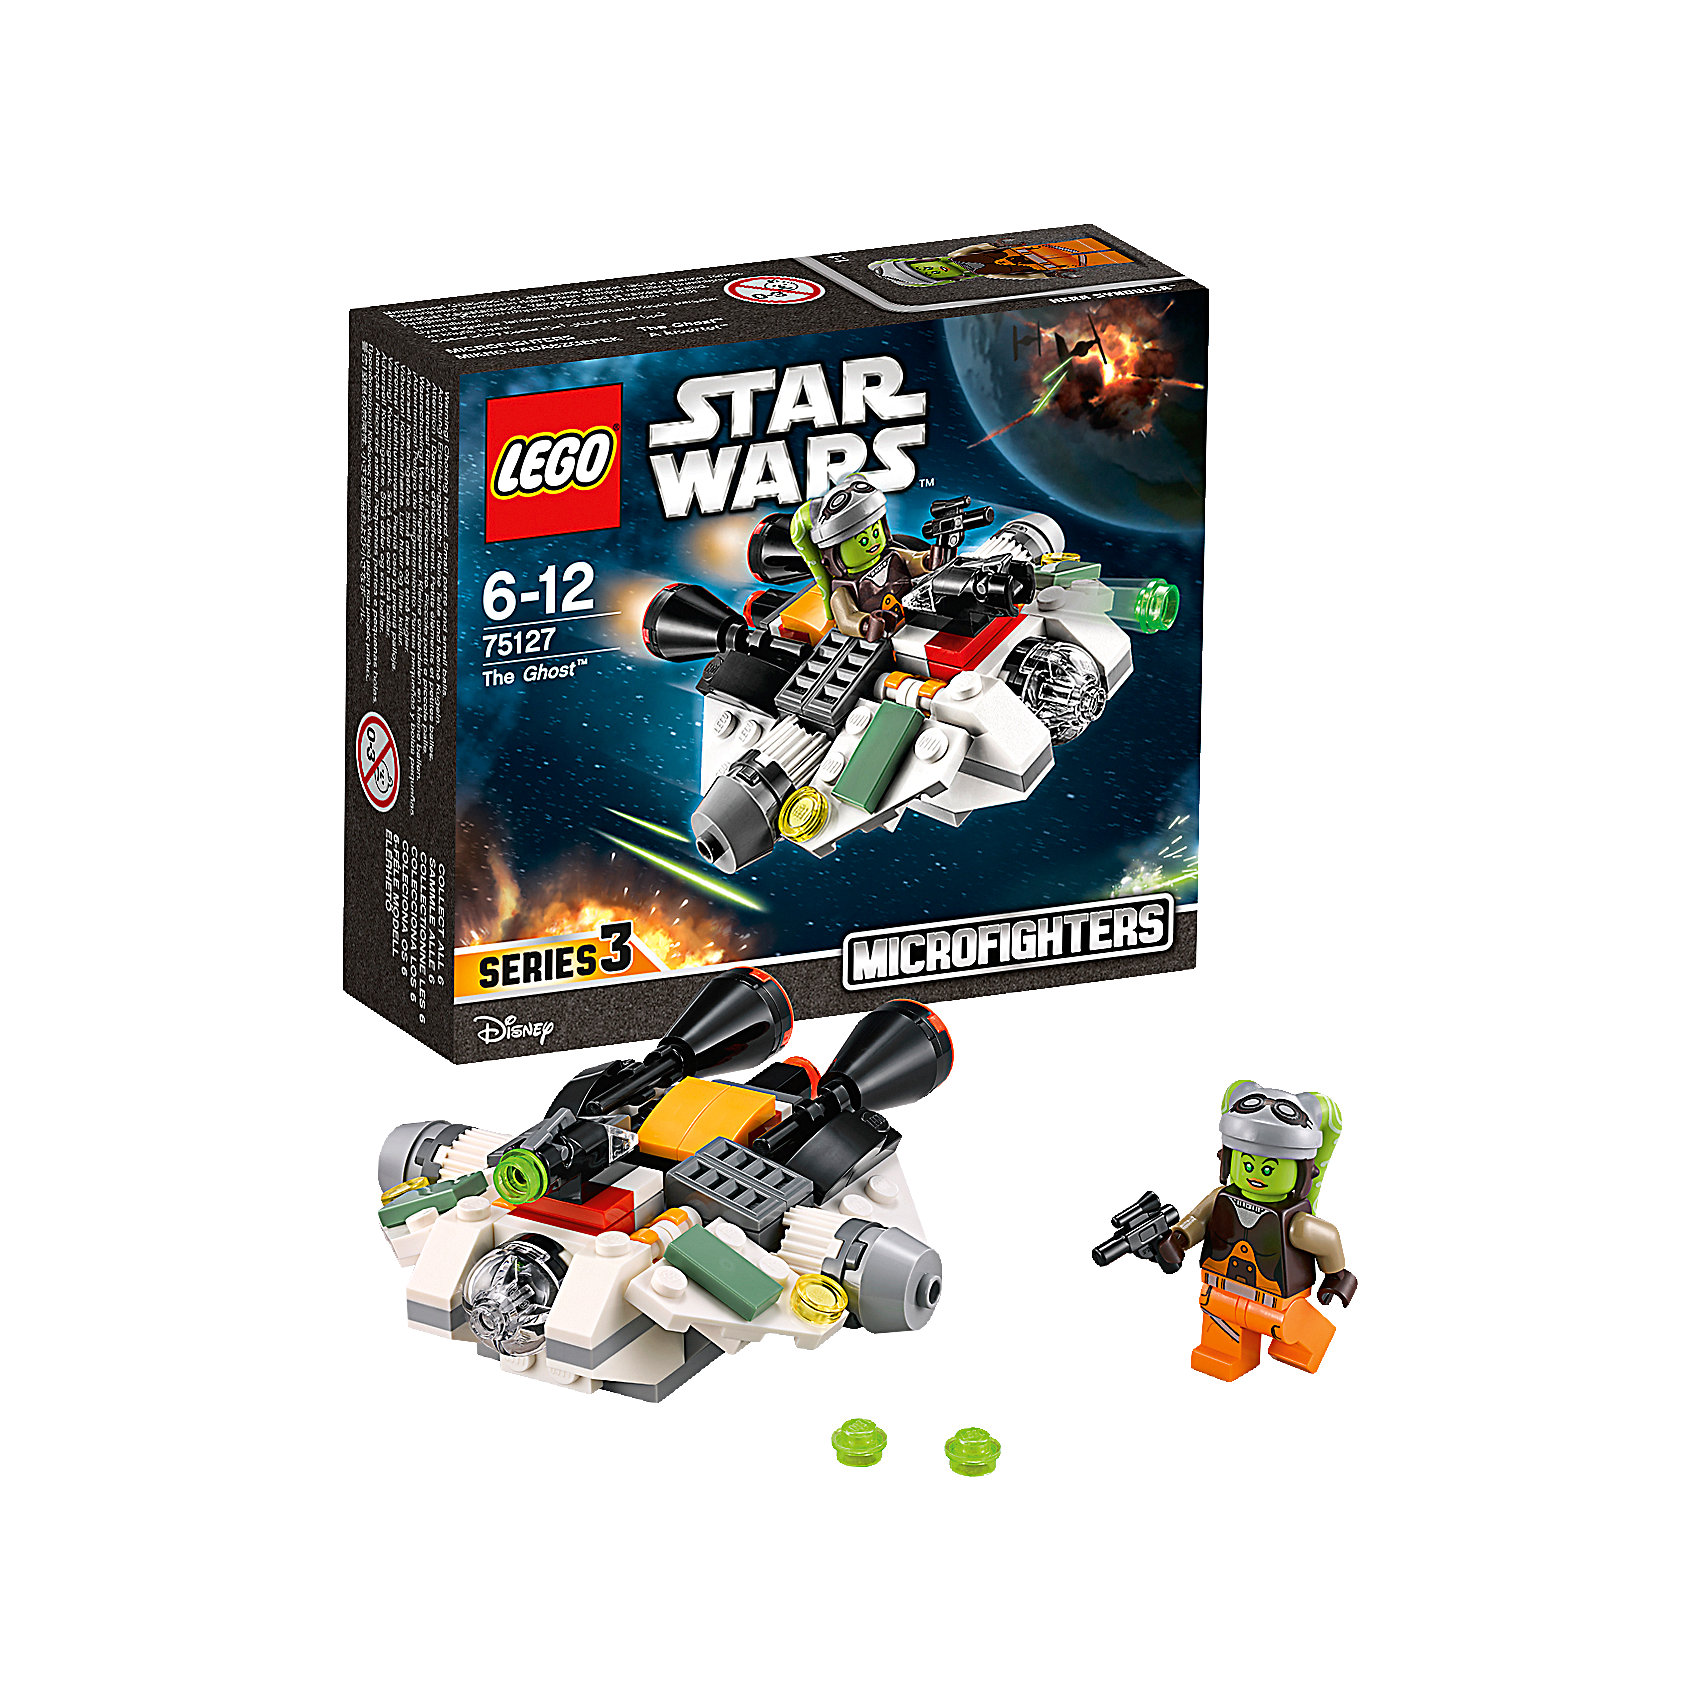 LEGO LEGO Star Wars 75127: Призрак™ 459909 001 451791 001 smart array p700m 512mb controller original 95%new well tested working one year warranty